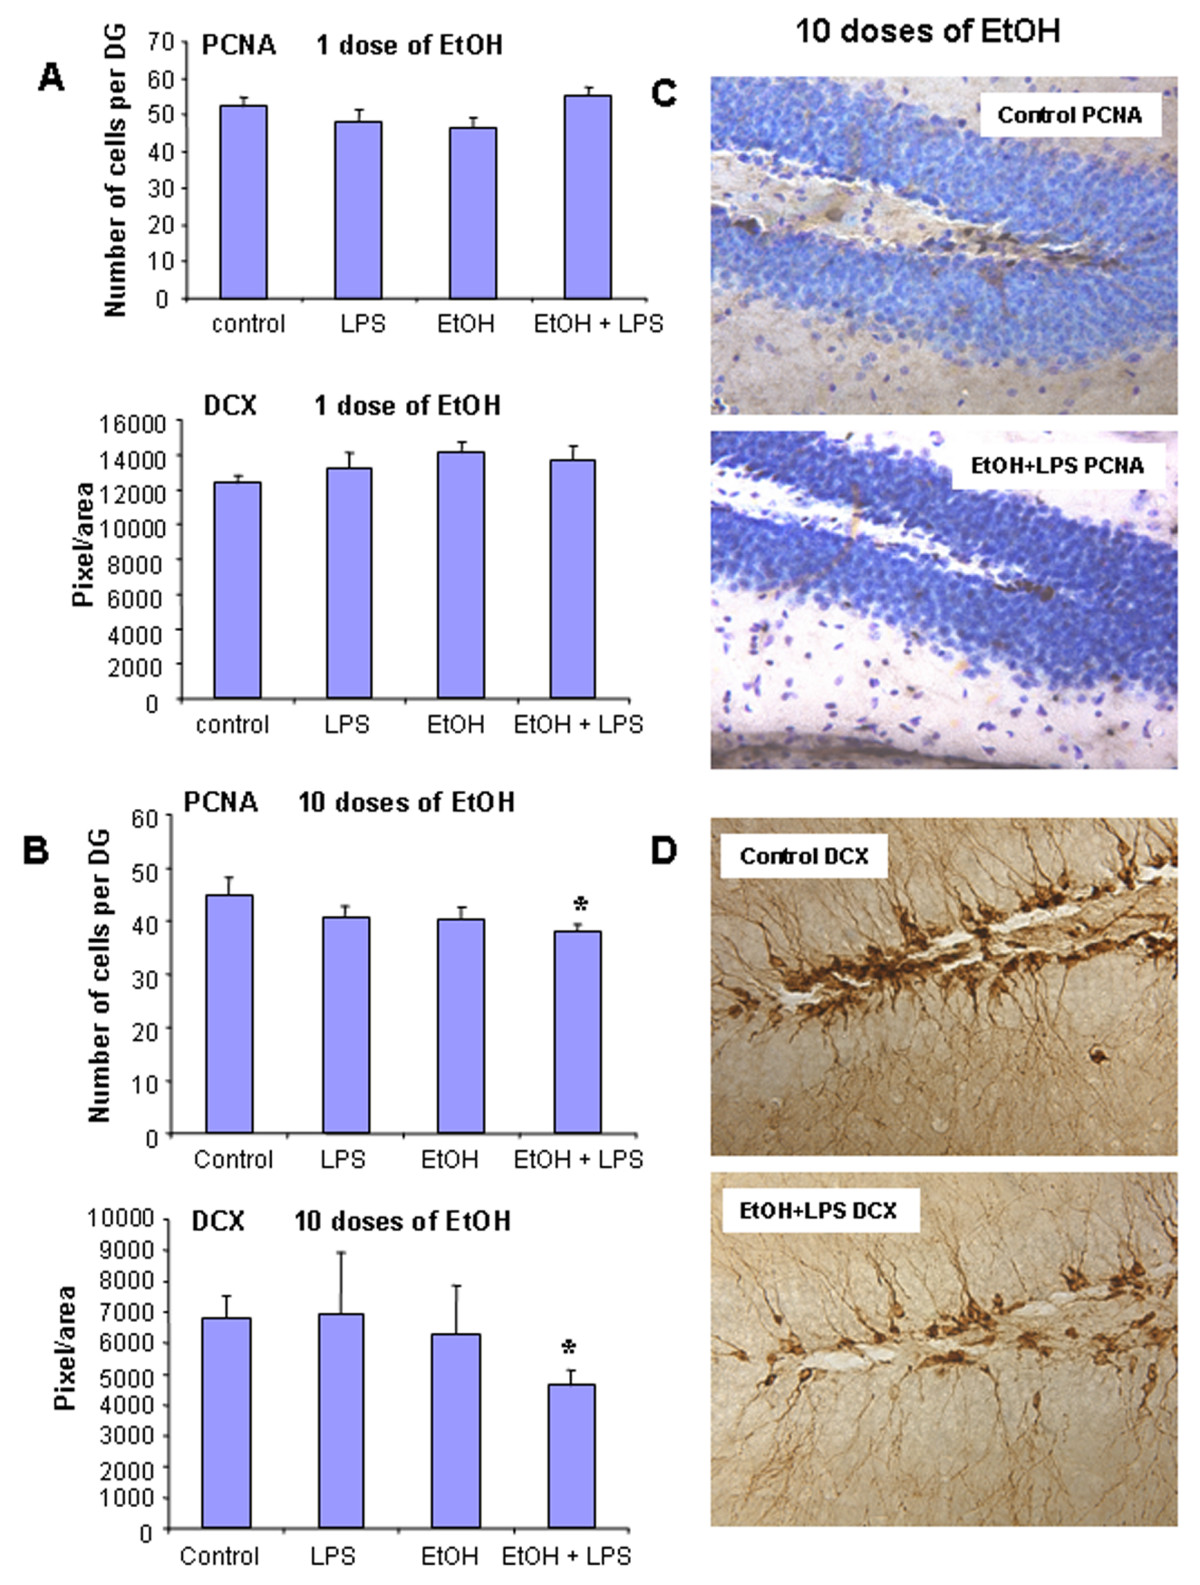 https://static-content.springer.com/image/art%3A10.1186%2F1742-2094-5-10/MediaObjects/12974_2008_Article_127_Fig6_HTML.jpg